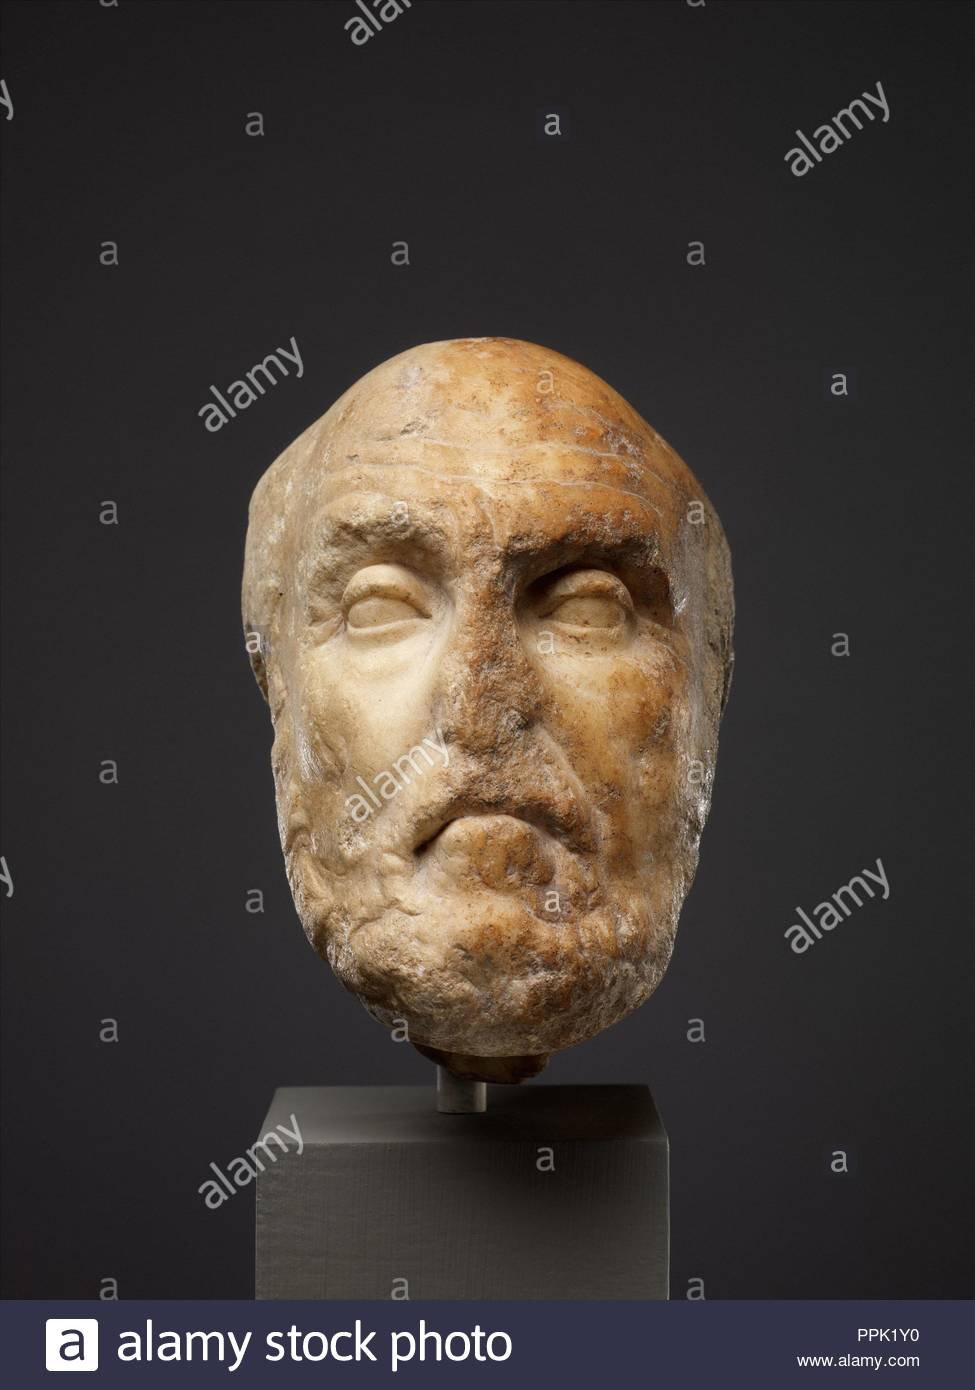 Marble portrait head of the philosopher Chrysippos, Early Imperial, 1st century A.D., Roman, Marble, 5 1/2 in. (14 cm), Stone Sculpture, Copy of a Greek statue of the late 3rd century B.C., probably by Euboulides. Chrysippos was one of the most important Stoic philosophers of the third century B.C. His writings helped establish Stoicism as a major philosophical movement. - Stock Image